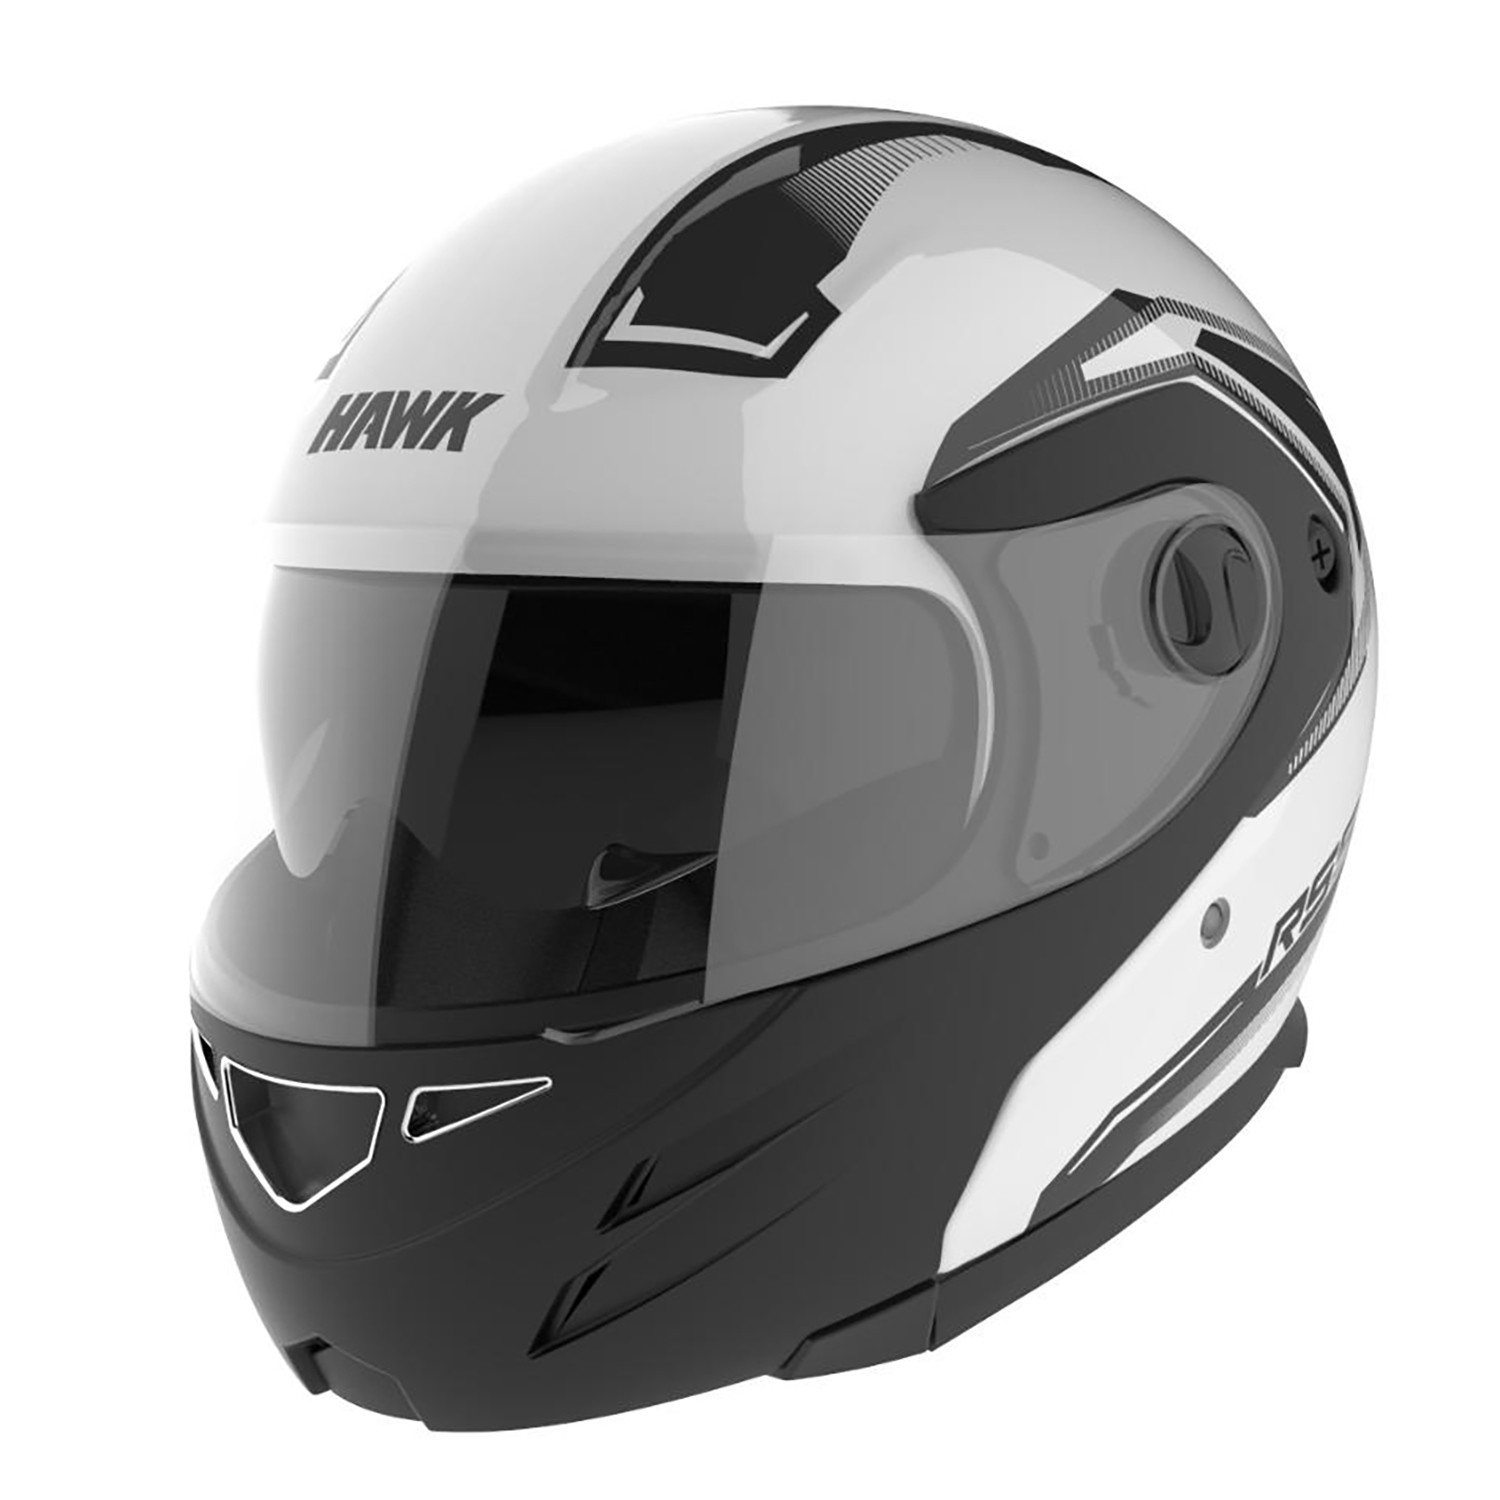 Casco Rebatible Hawk RS5 Vector Blanco Negro